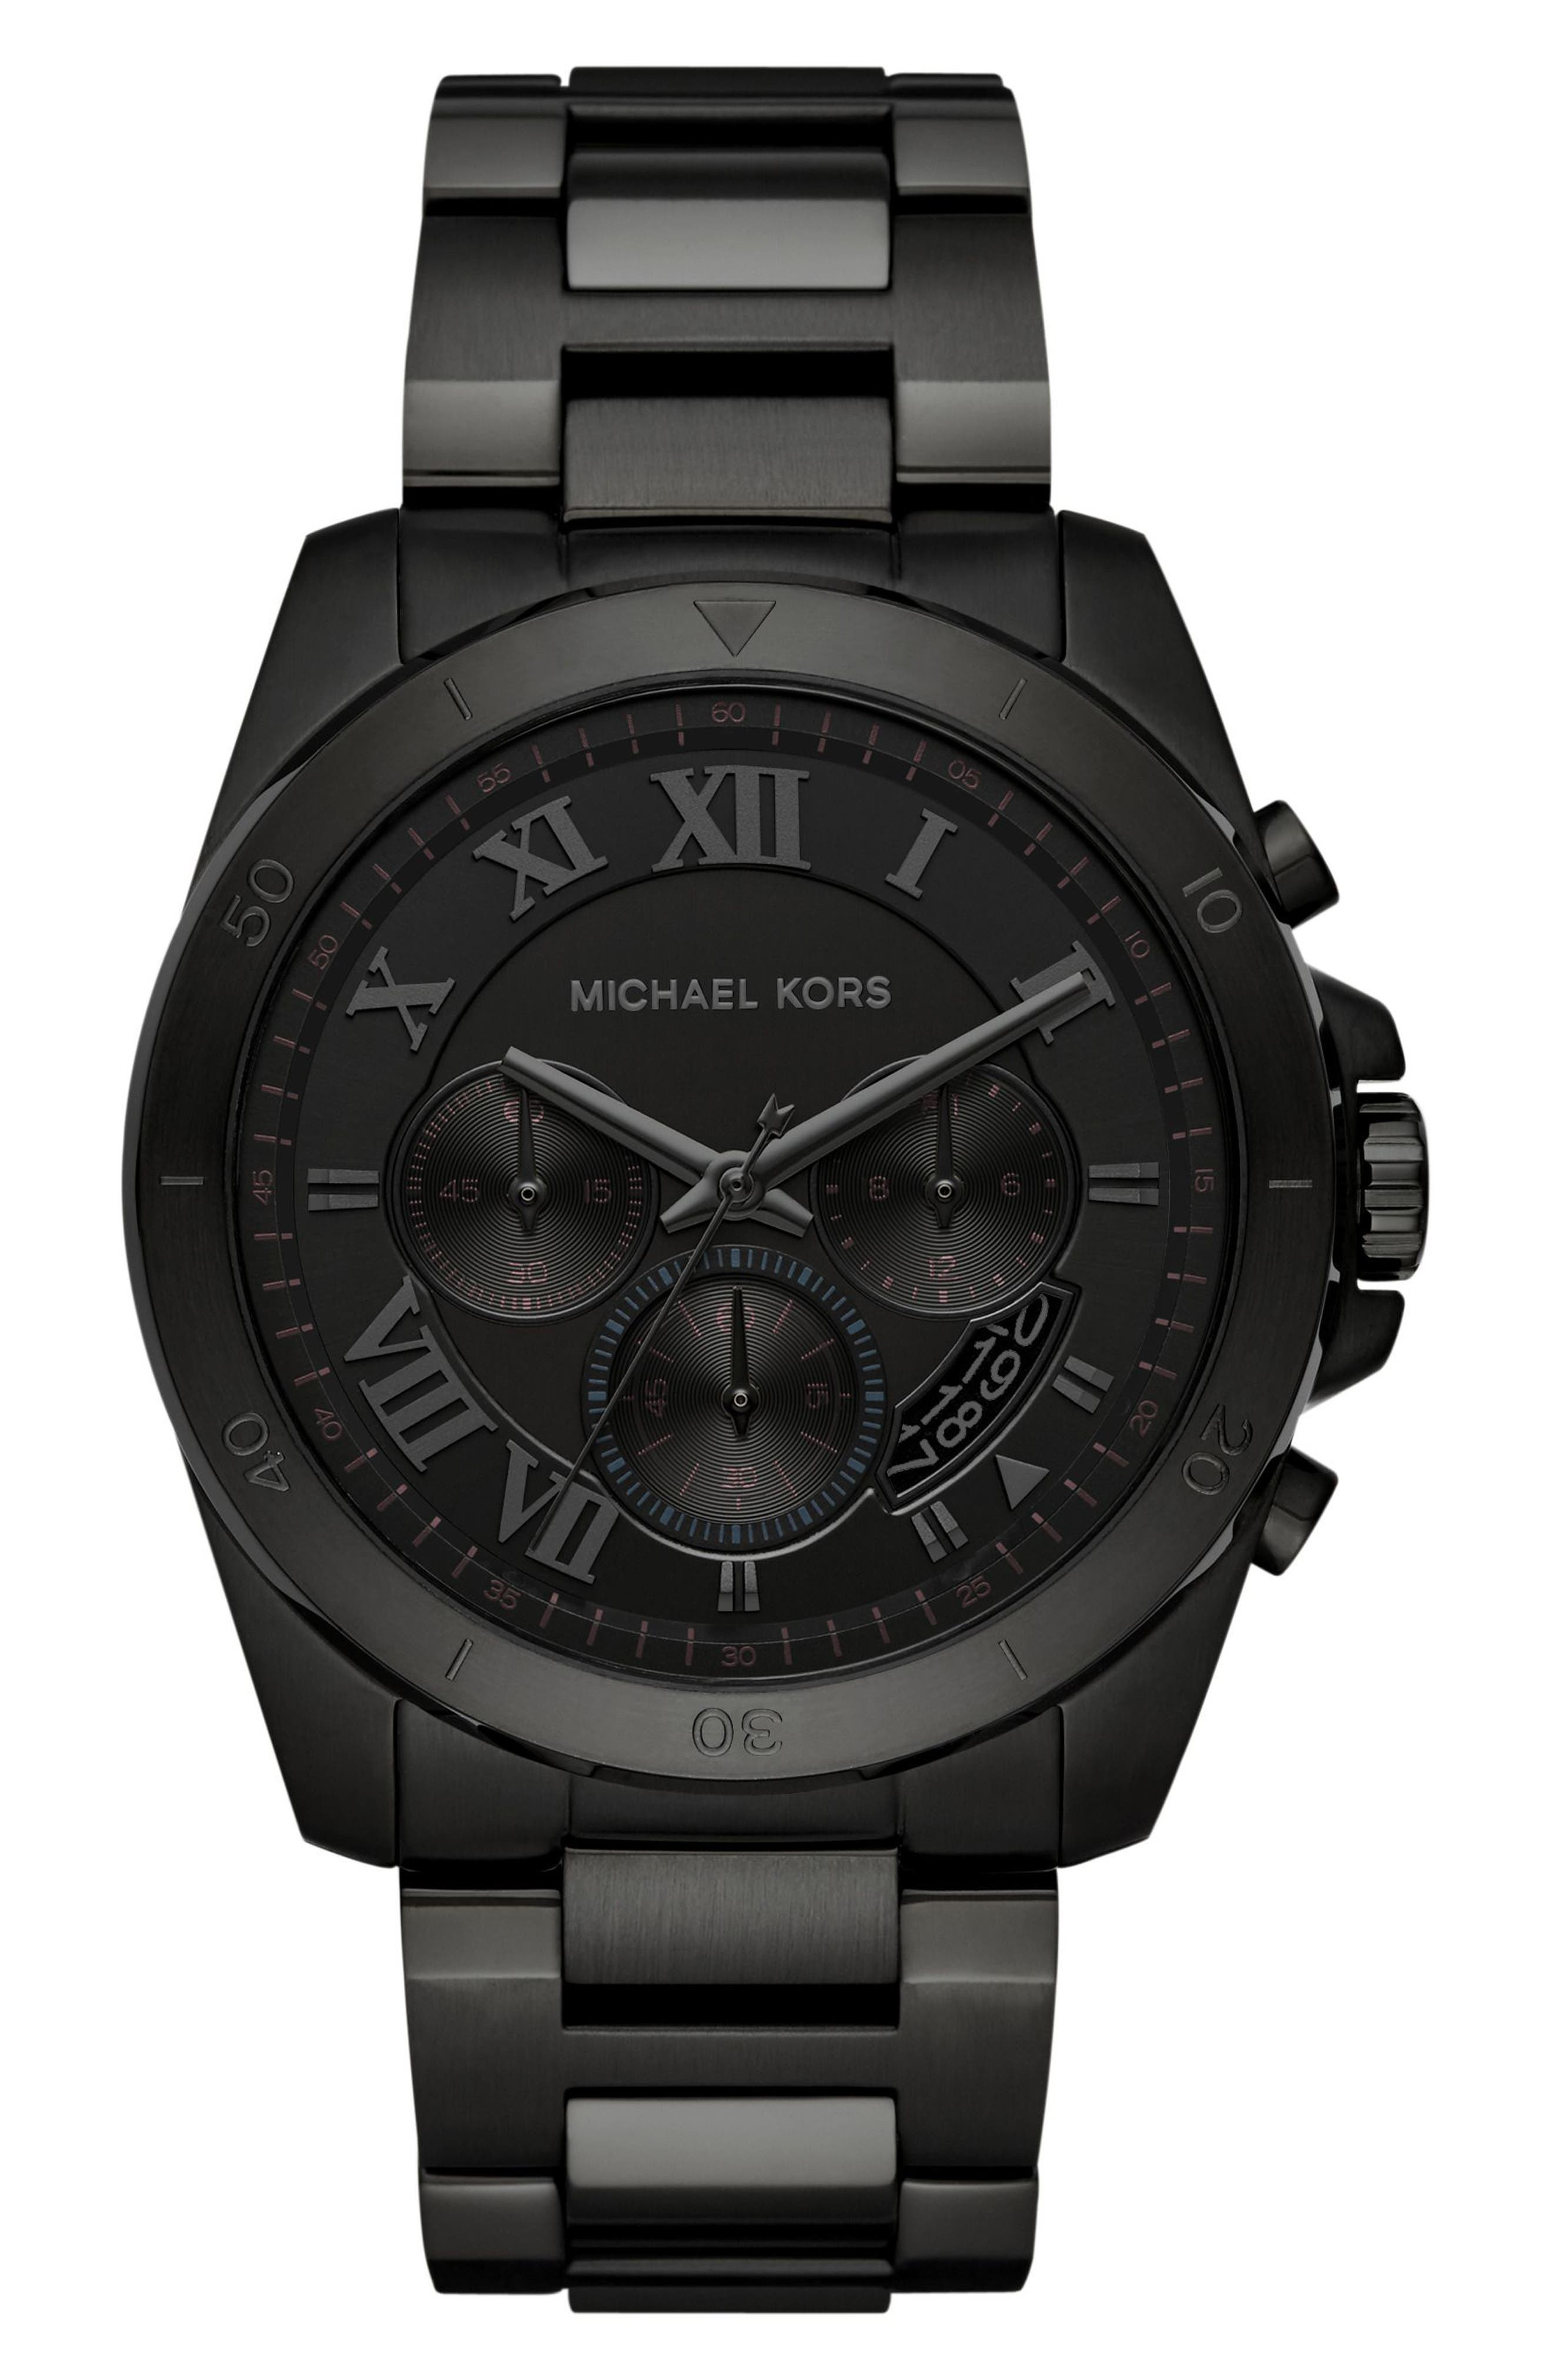 Main Image - Michael Kors 'Brecken' Chronograph Silicone Strap Watch, 44mm